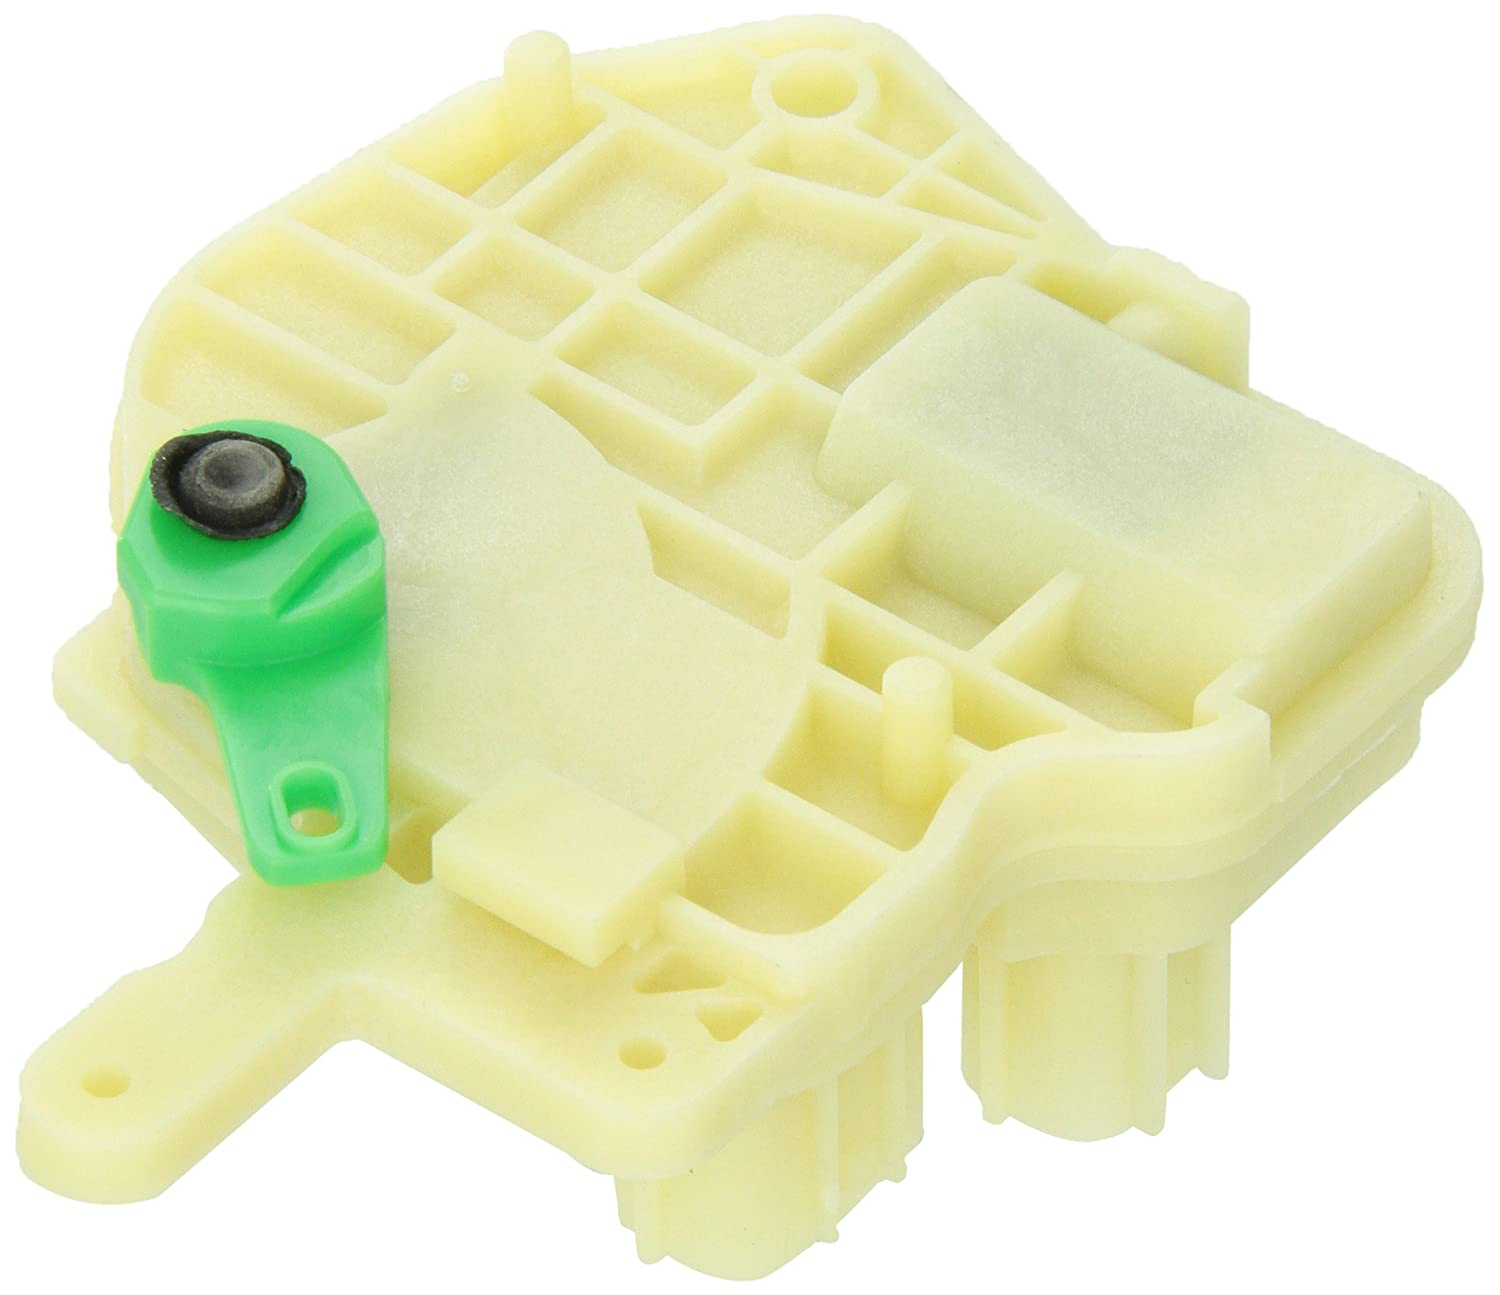 Genuine Honda 72115 S5a 003 Door Lock Actuator Assembly 2004 Crv Parts Discount Factory Oem And Automotive